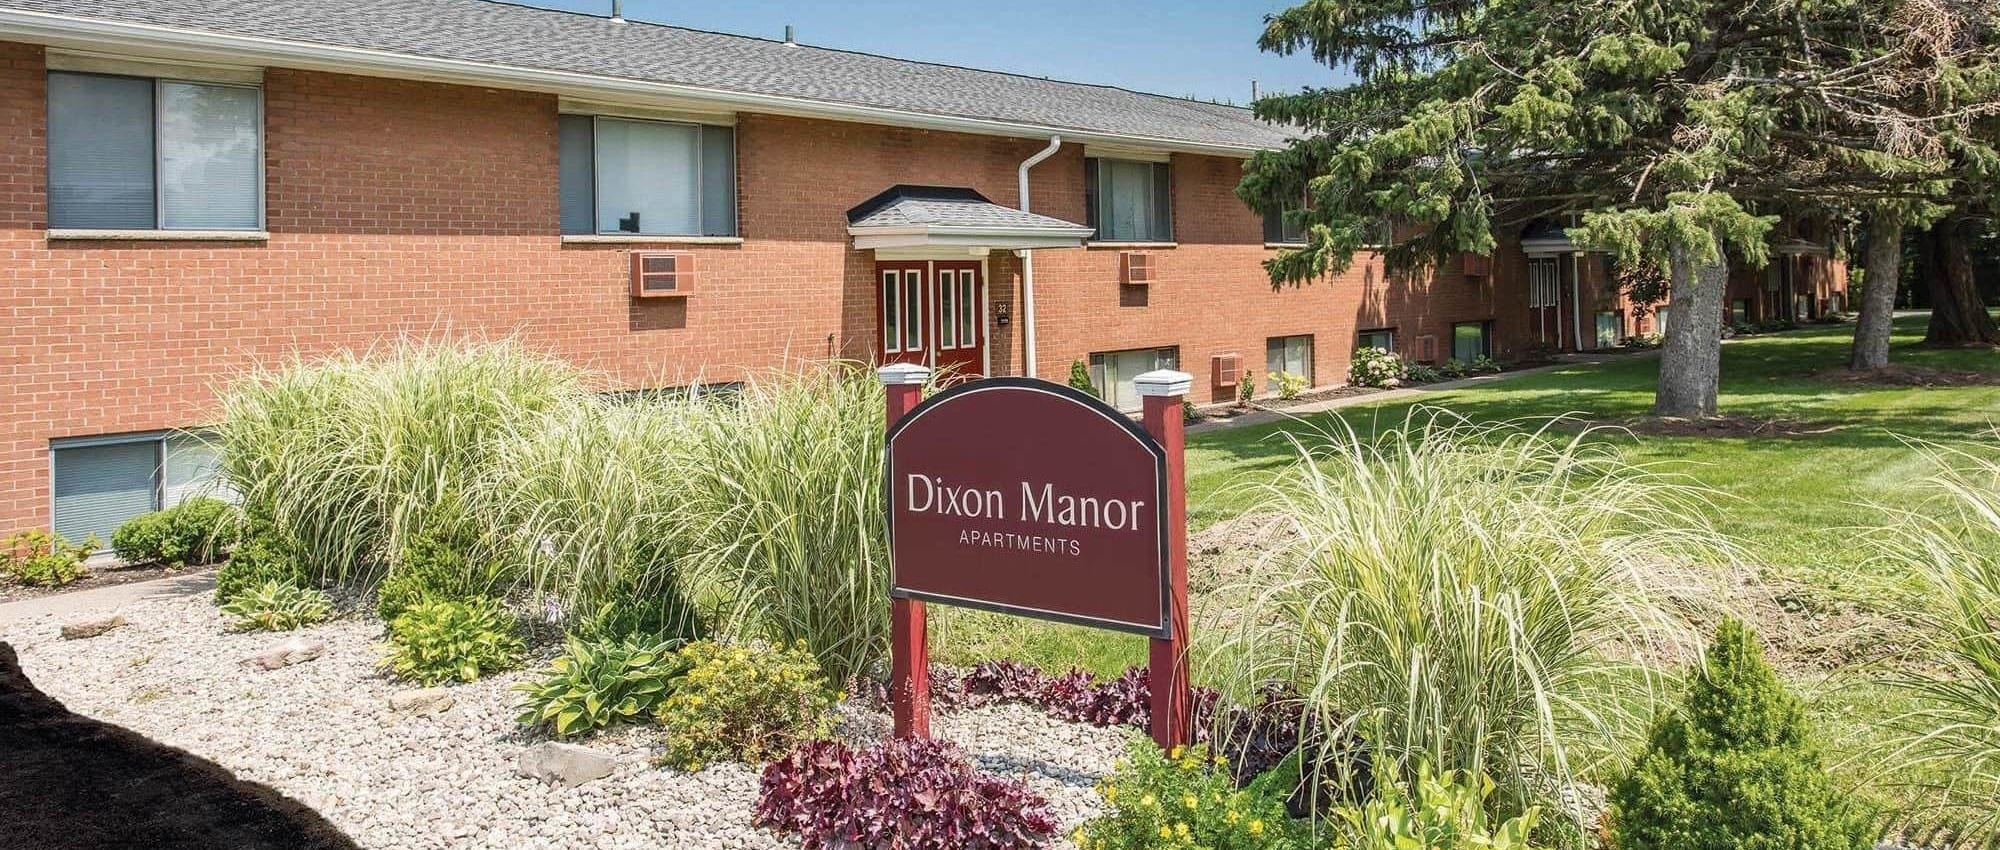 Apartments at Dixon Manor in Rochester, New York